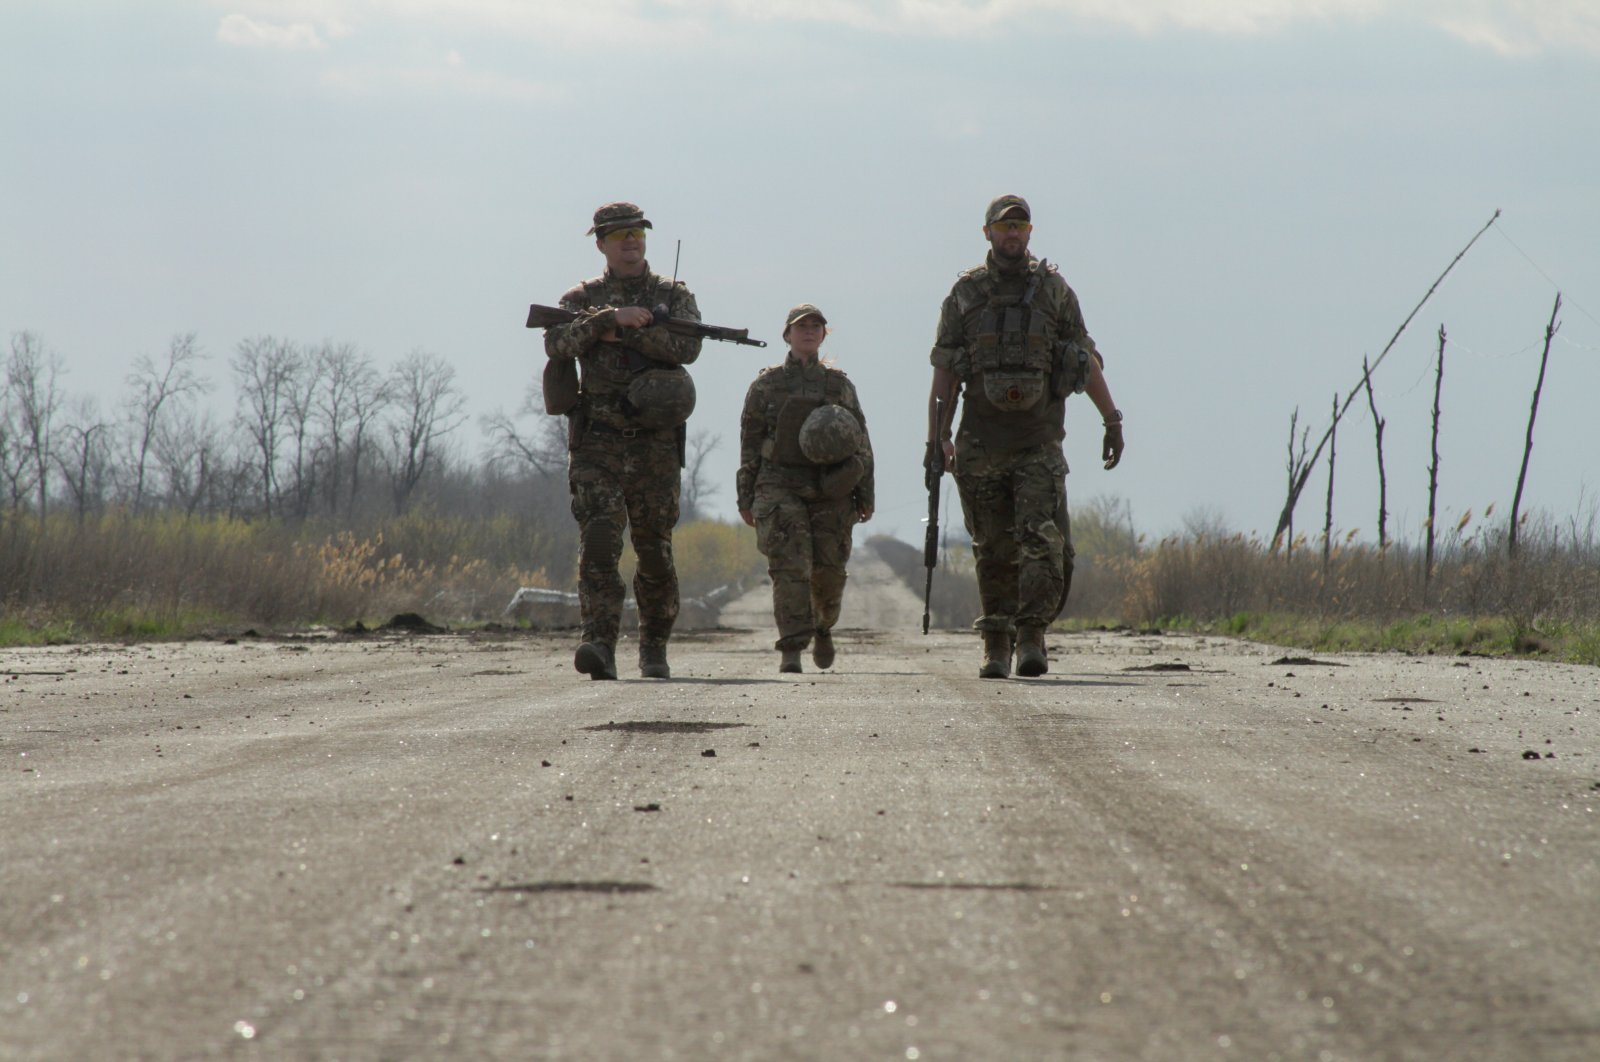 Service members of the Ukrainian armed forces walk along a road near the line of separation outside the rebel-controlled city of Donetsk, Ukraine, April 26, 2021. (Reuters/Serhiy Takhmazov Photo)